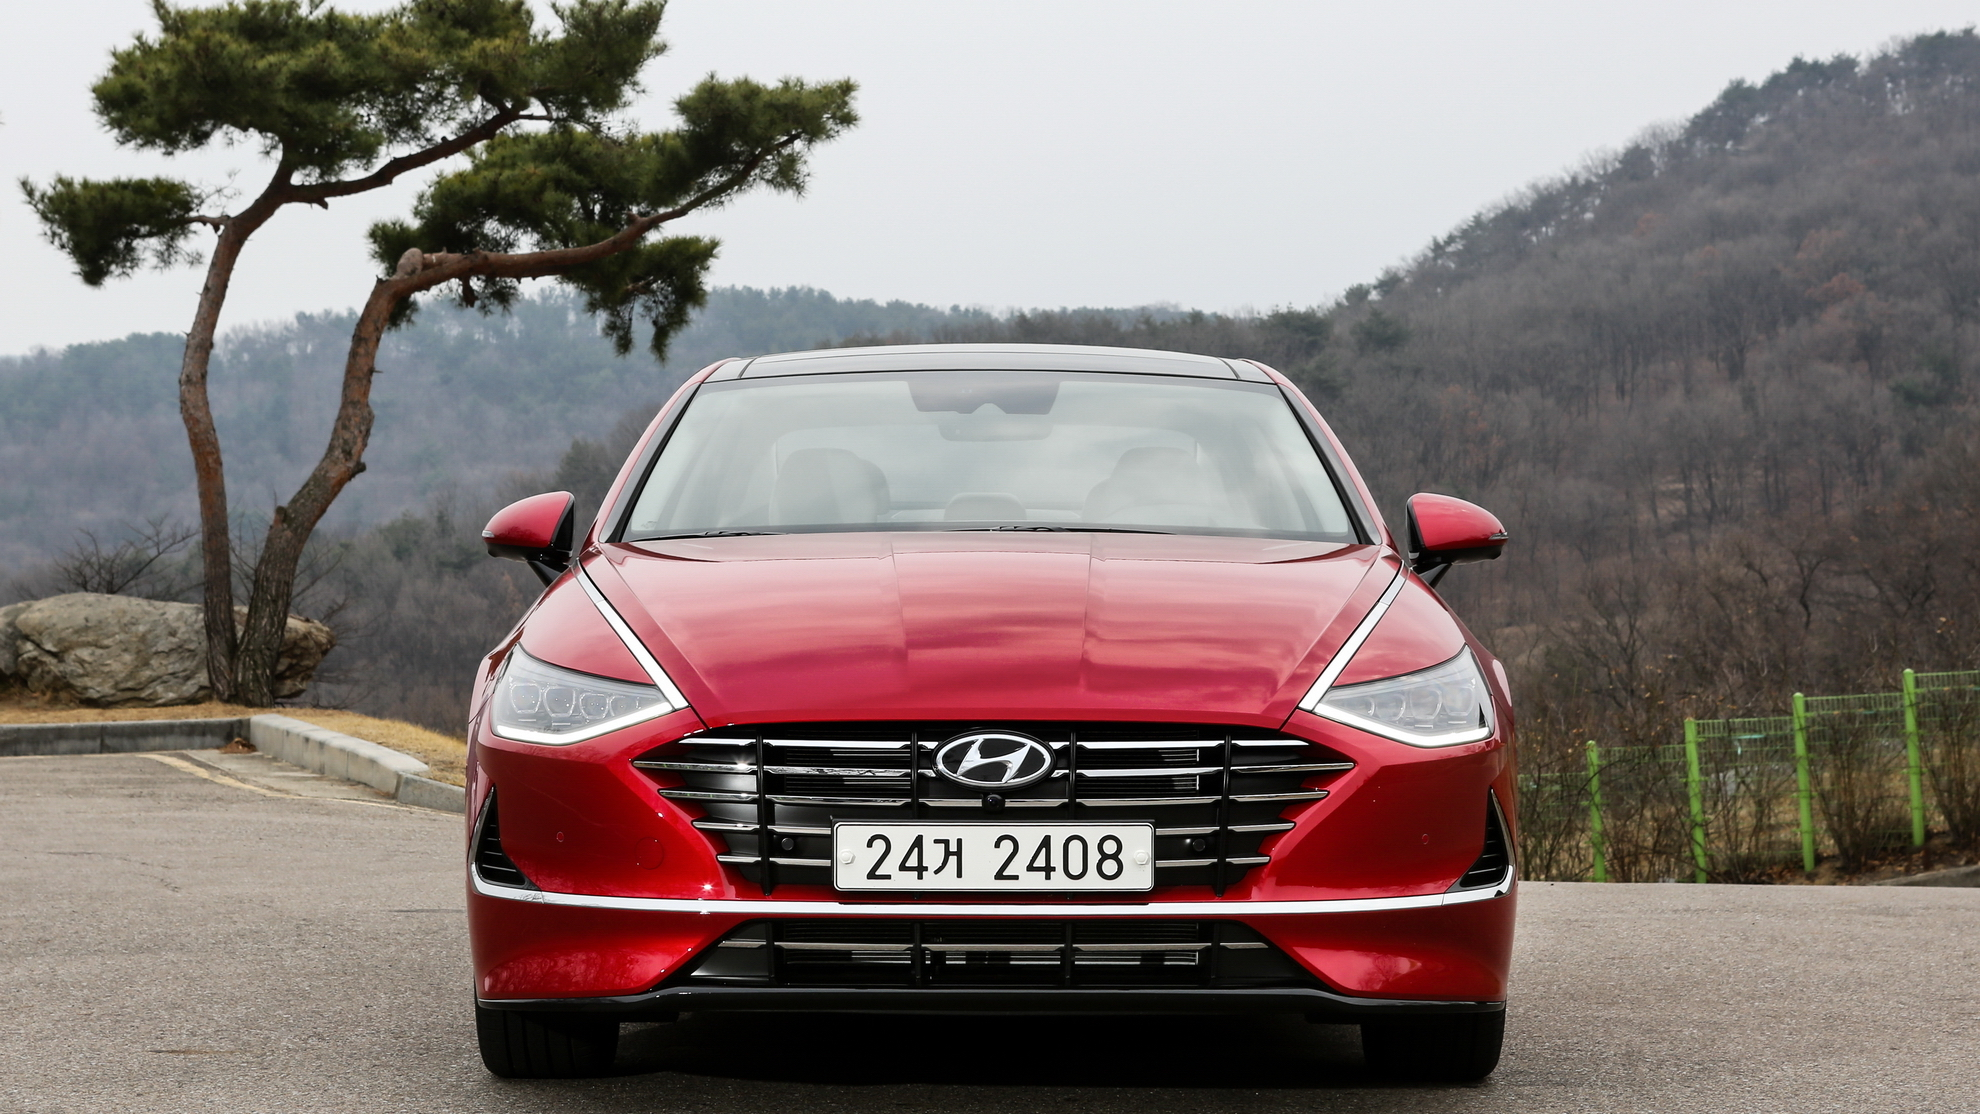 First drive review: 2020 Hyundai Sonata doubles down on sedan